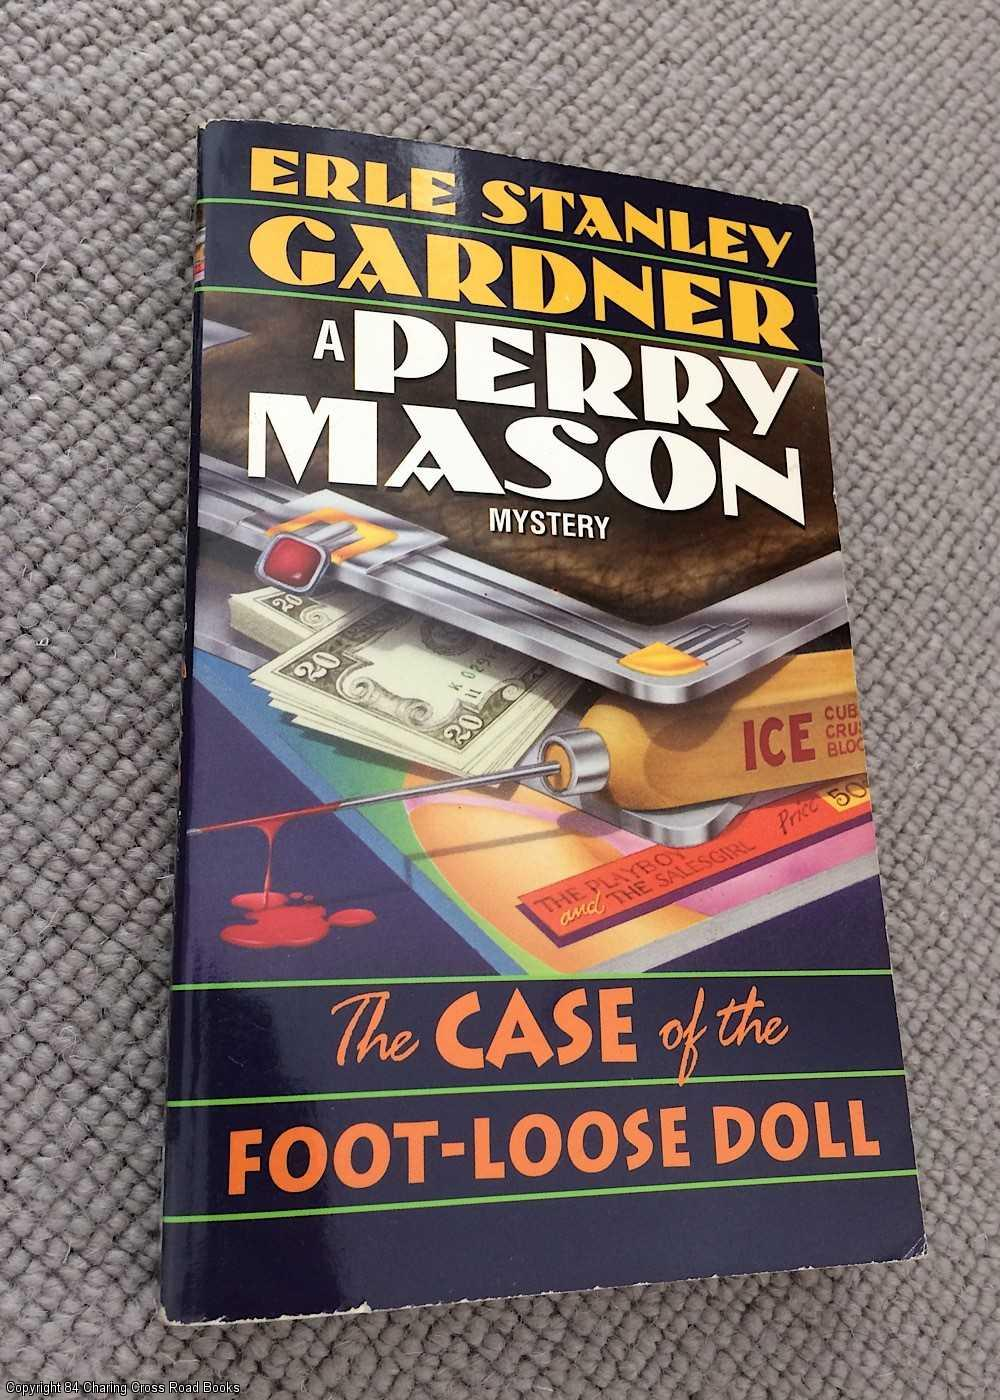 GARDNER, ERLE STANLEY - The Case of the Foot-Loose Doll